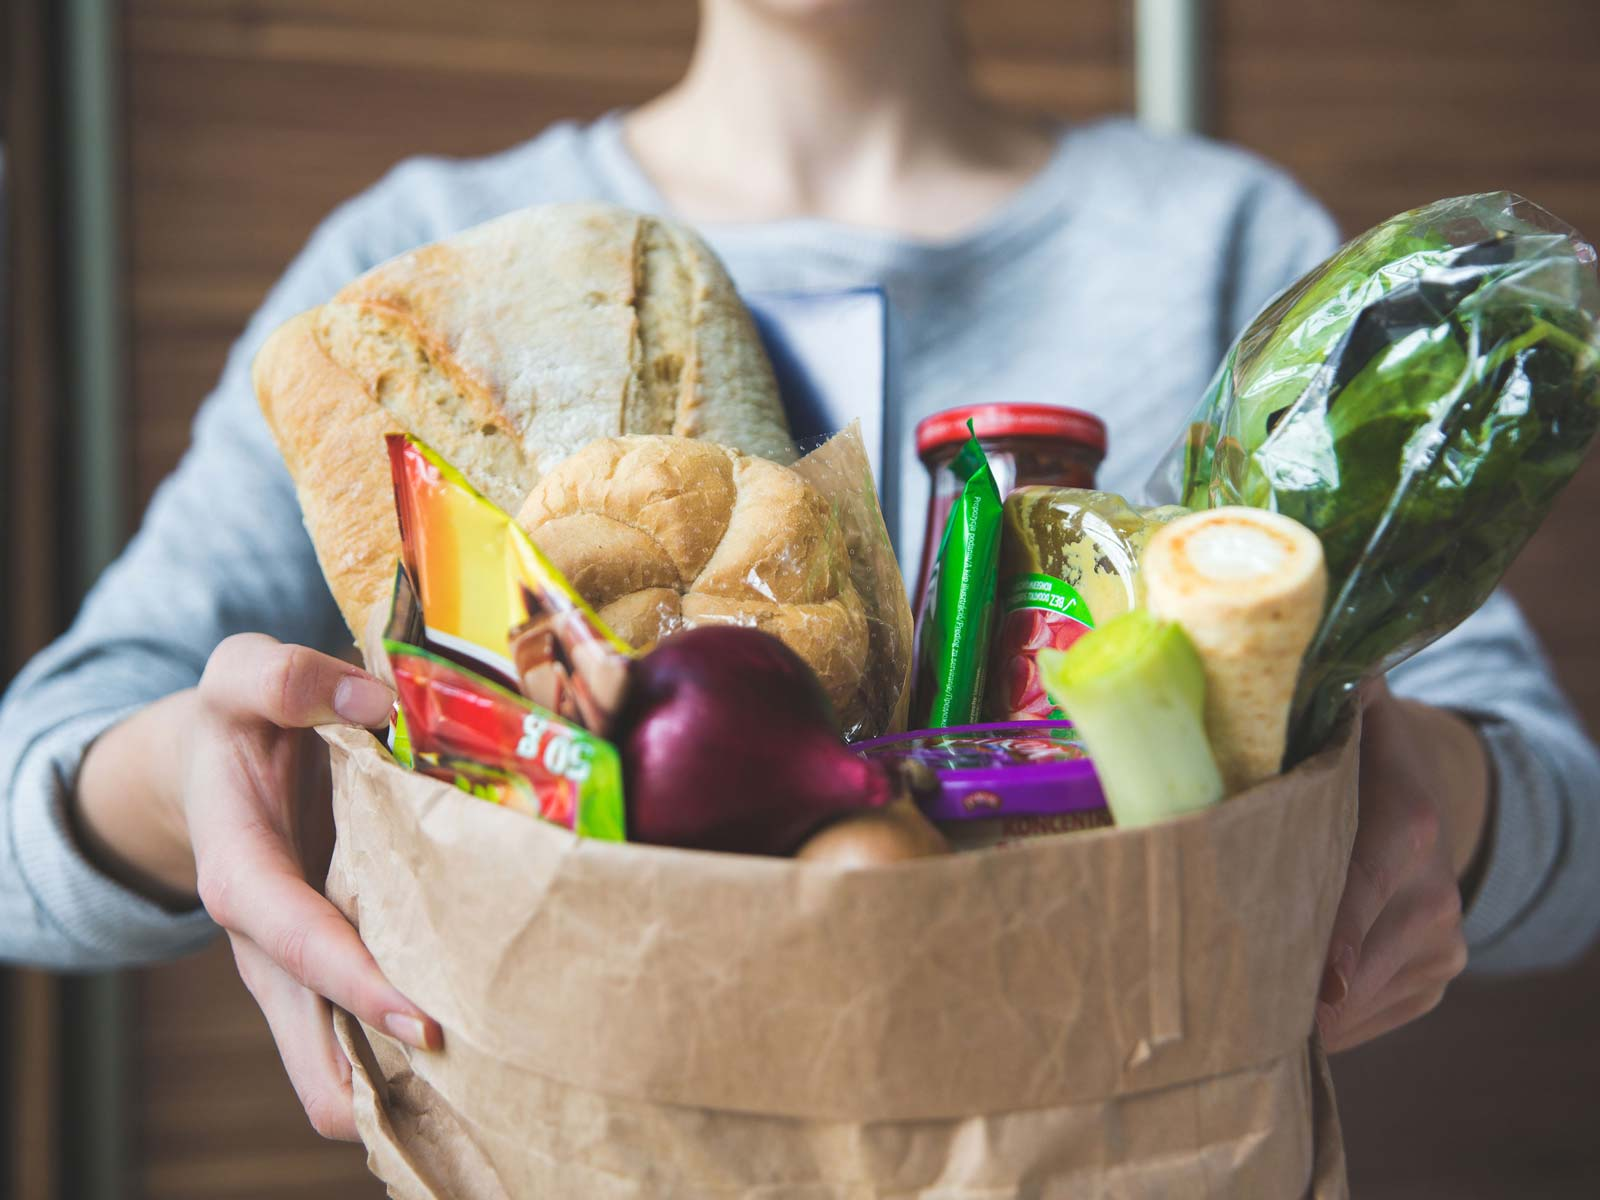 Instacart signs deal with Albertsons